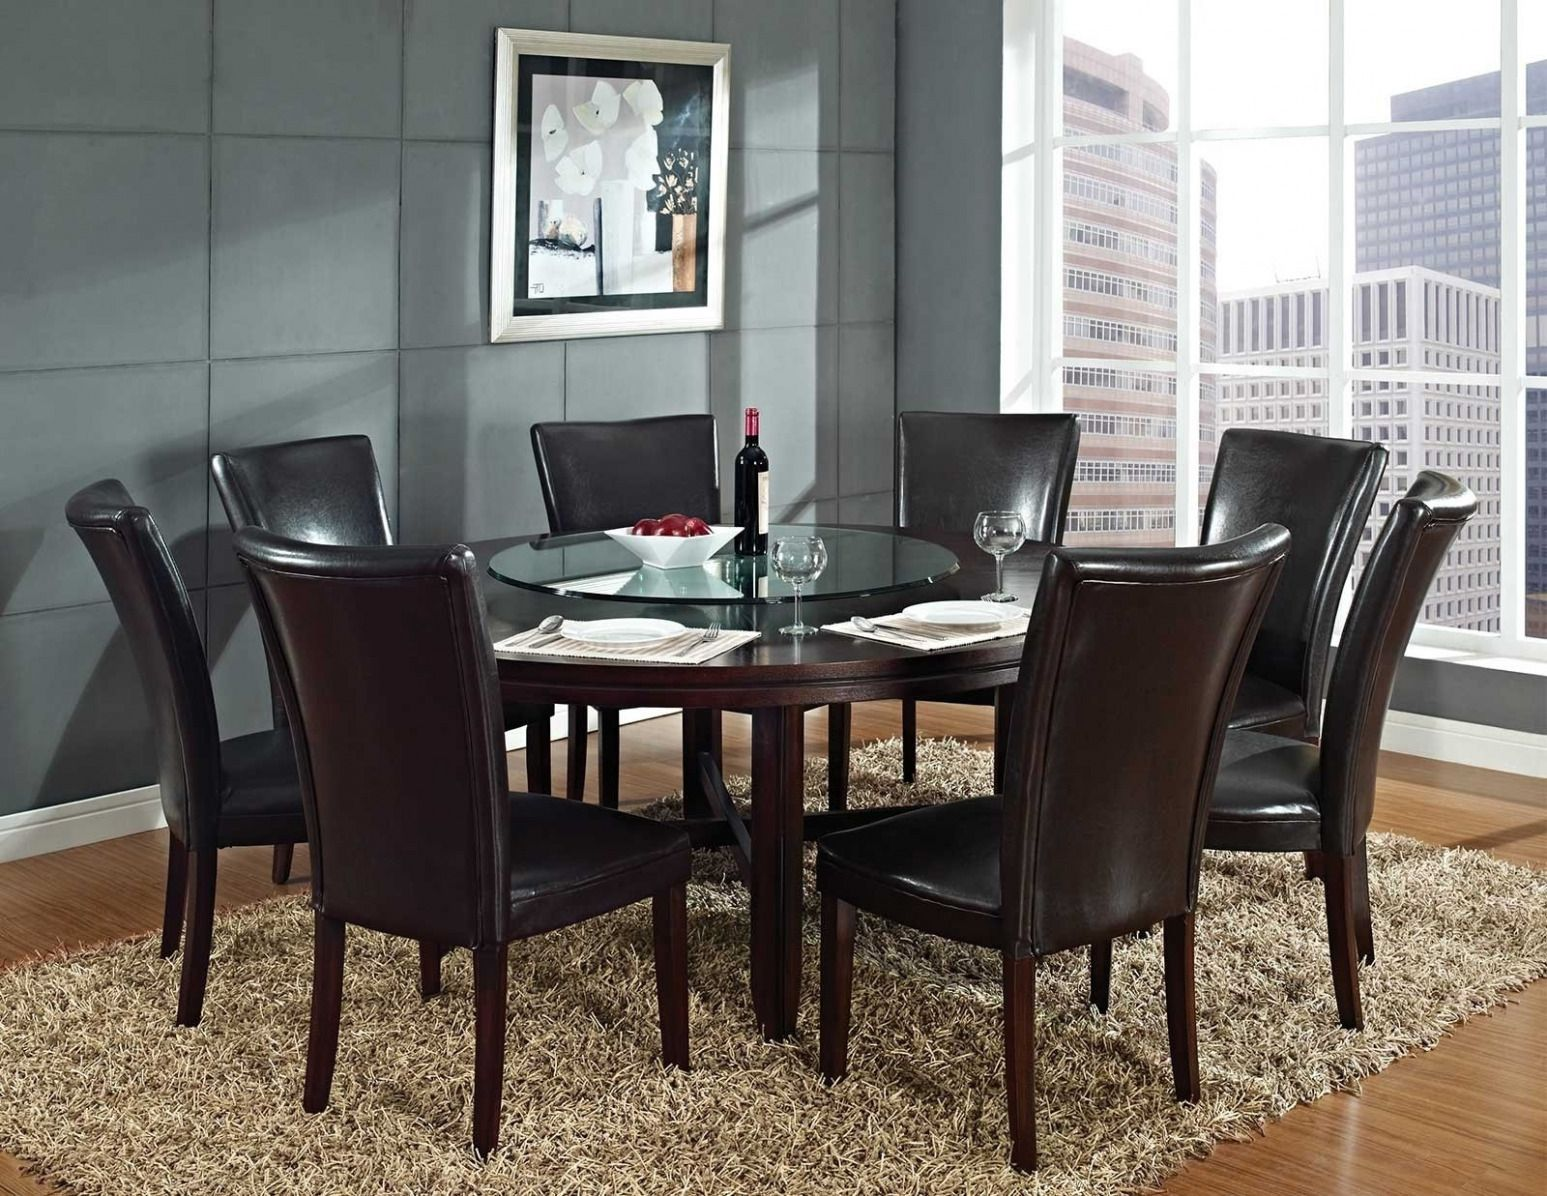 8 seater dining table and chair sets